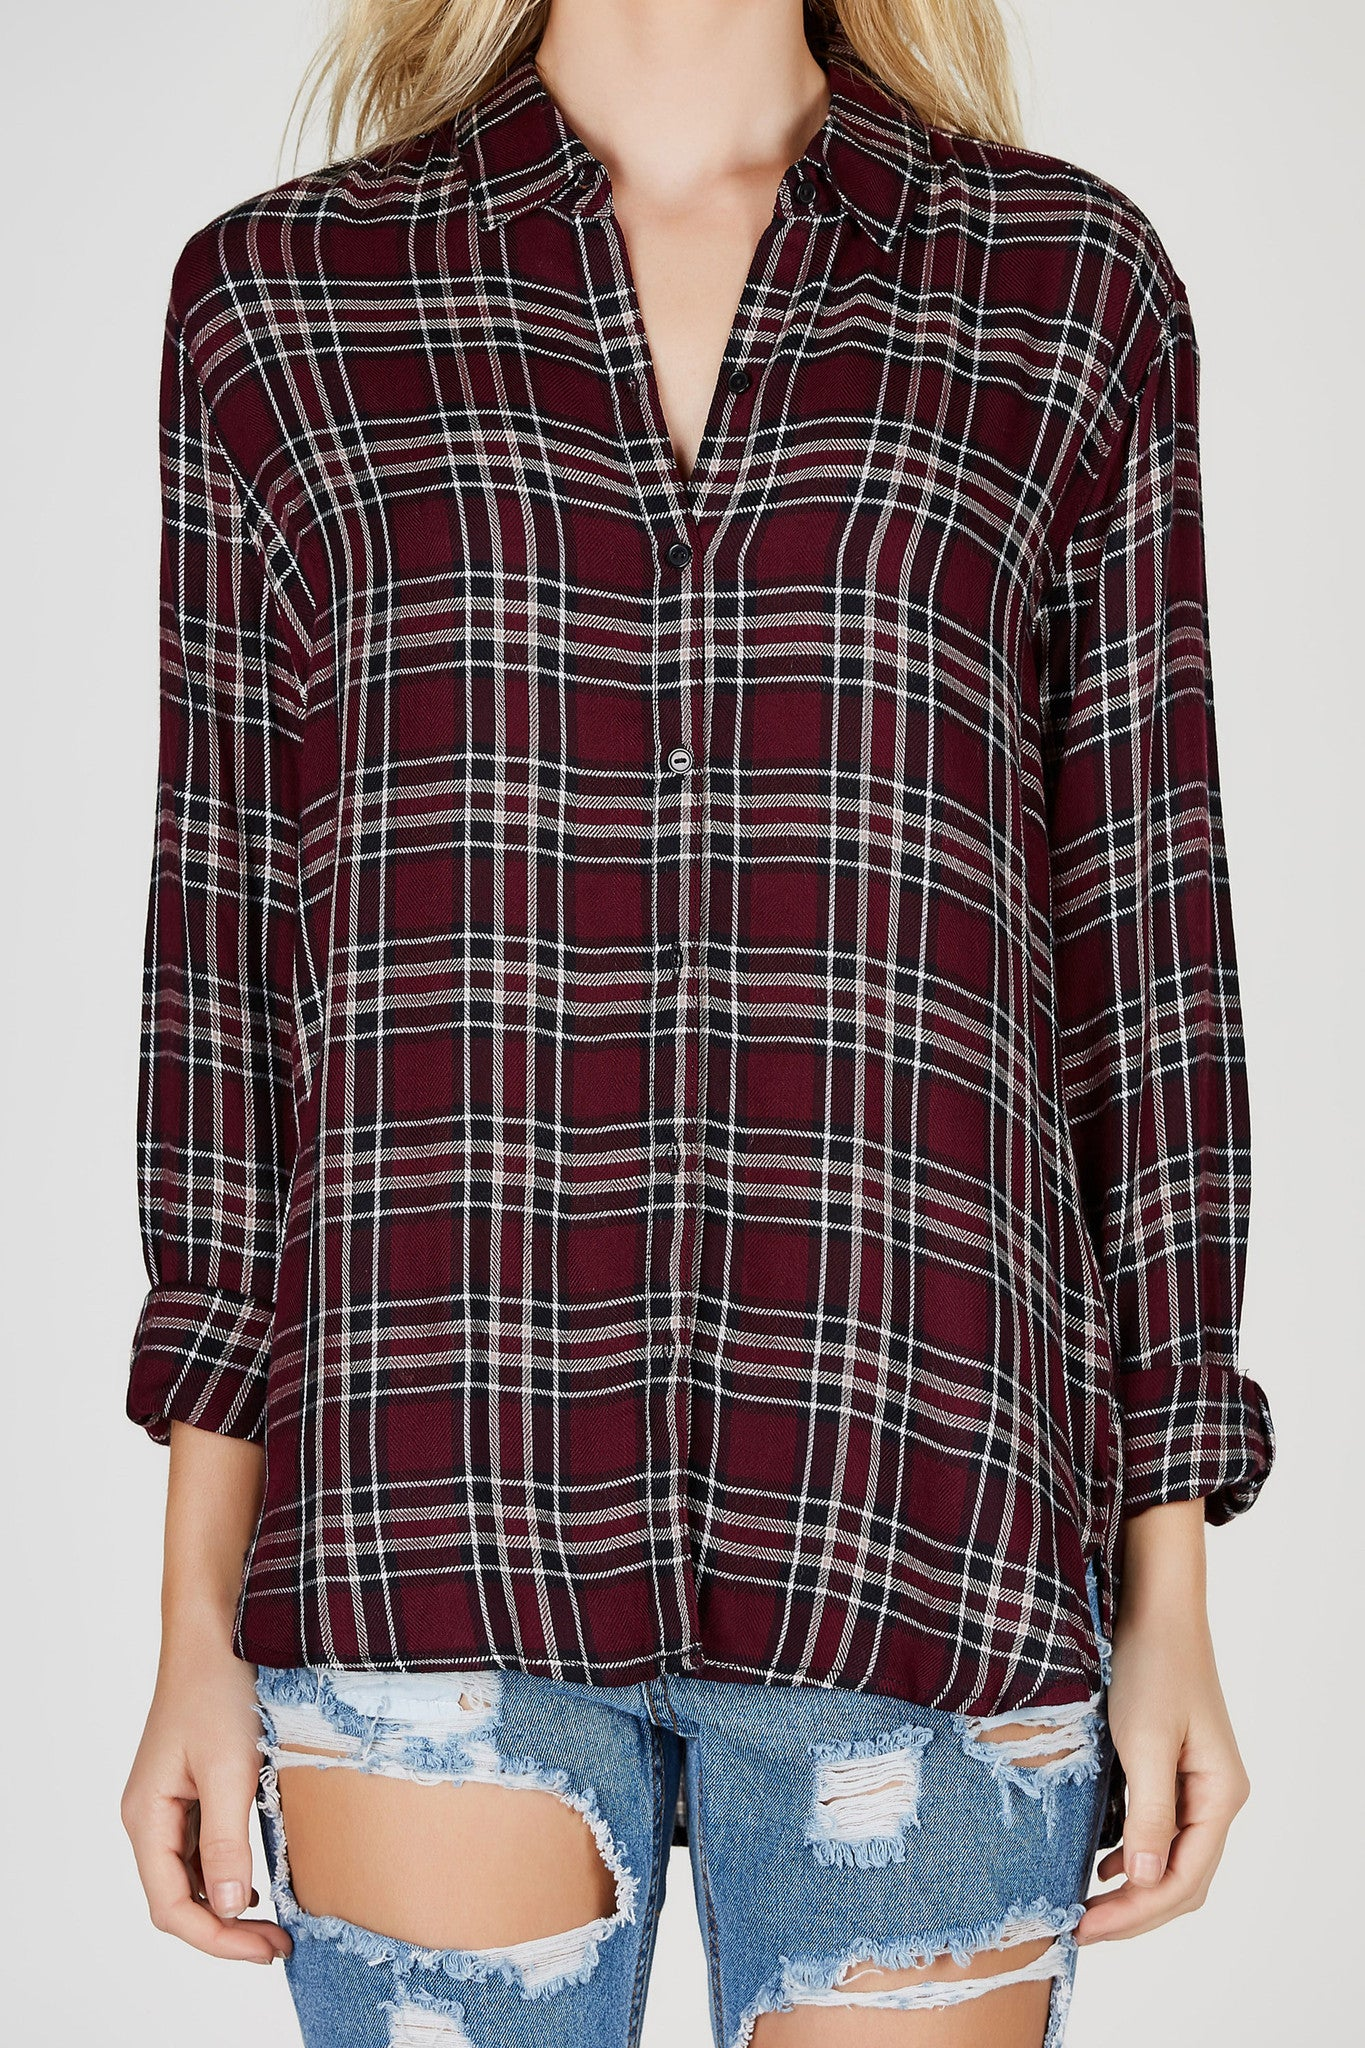 This soft lightweight flannel will soon become your go-to piece for Fall! Classic plaid pattern throughout with a soft rounded hem. Tuck it into your favorite jeans for an effortless daytime look!